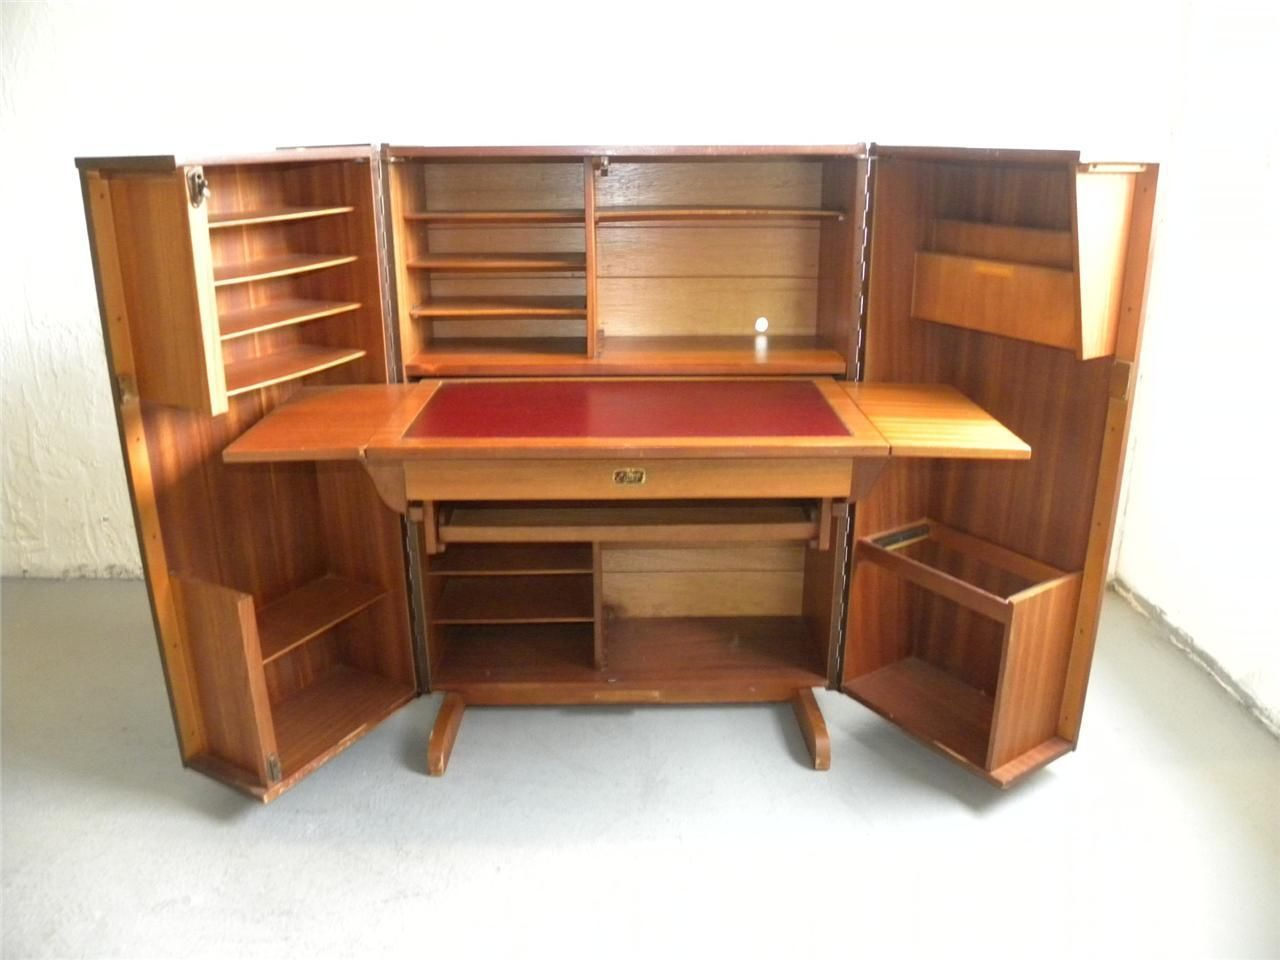 Unique Vintage Trunk Style English Secretary Desk Work Station | eBay - Unique Vintage Trunk Style English Secretary Desk Work Station